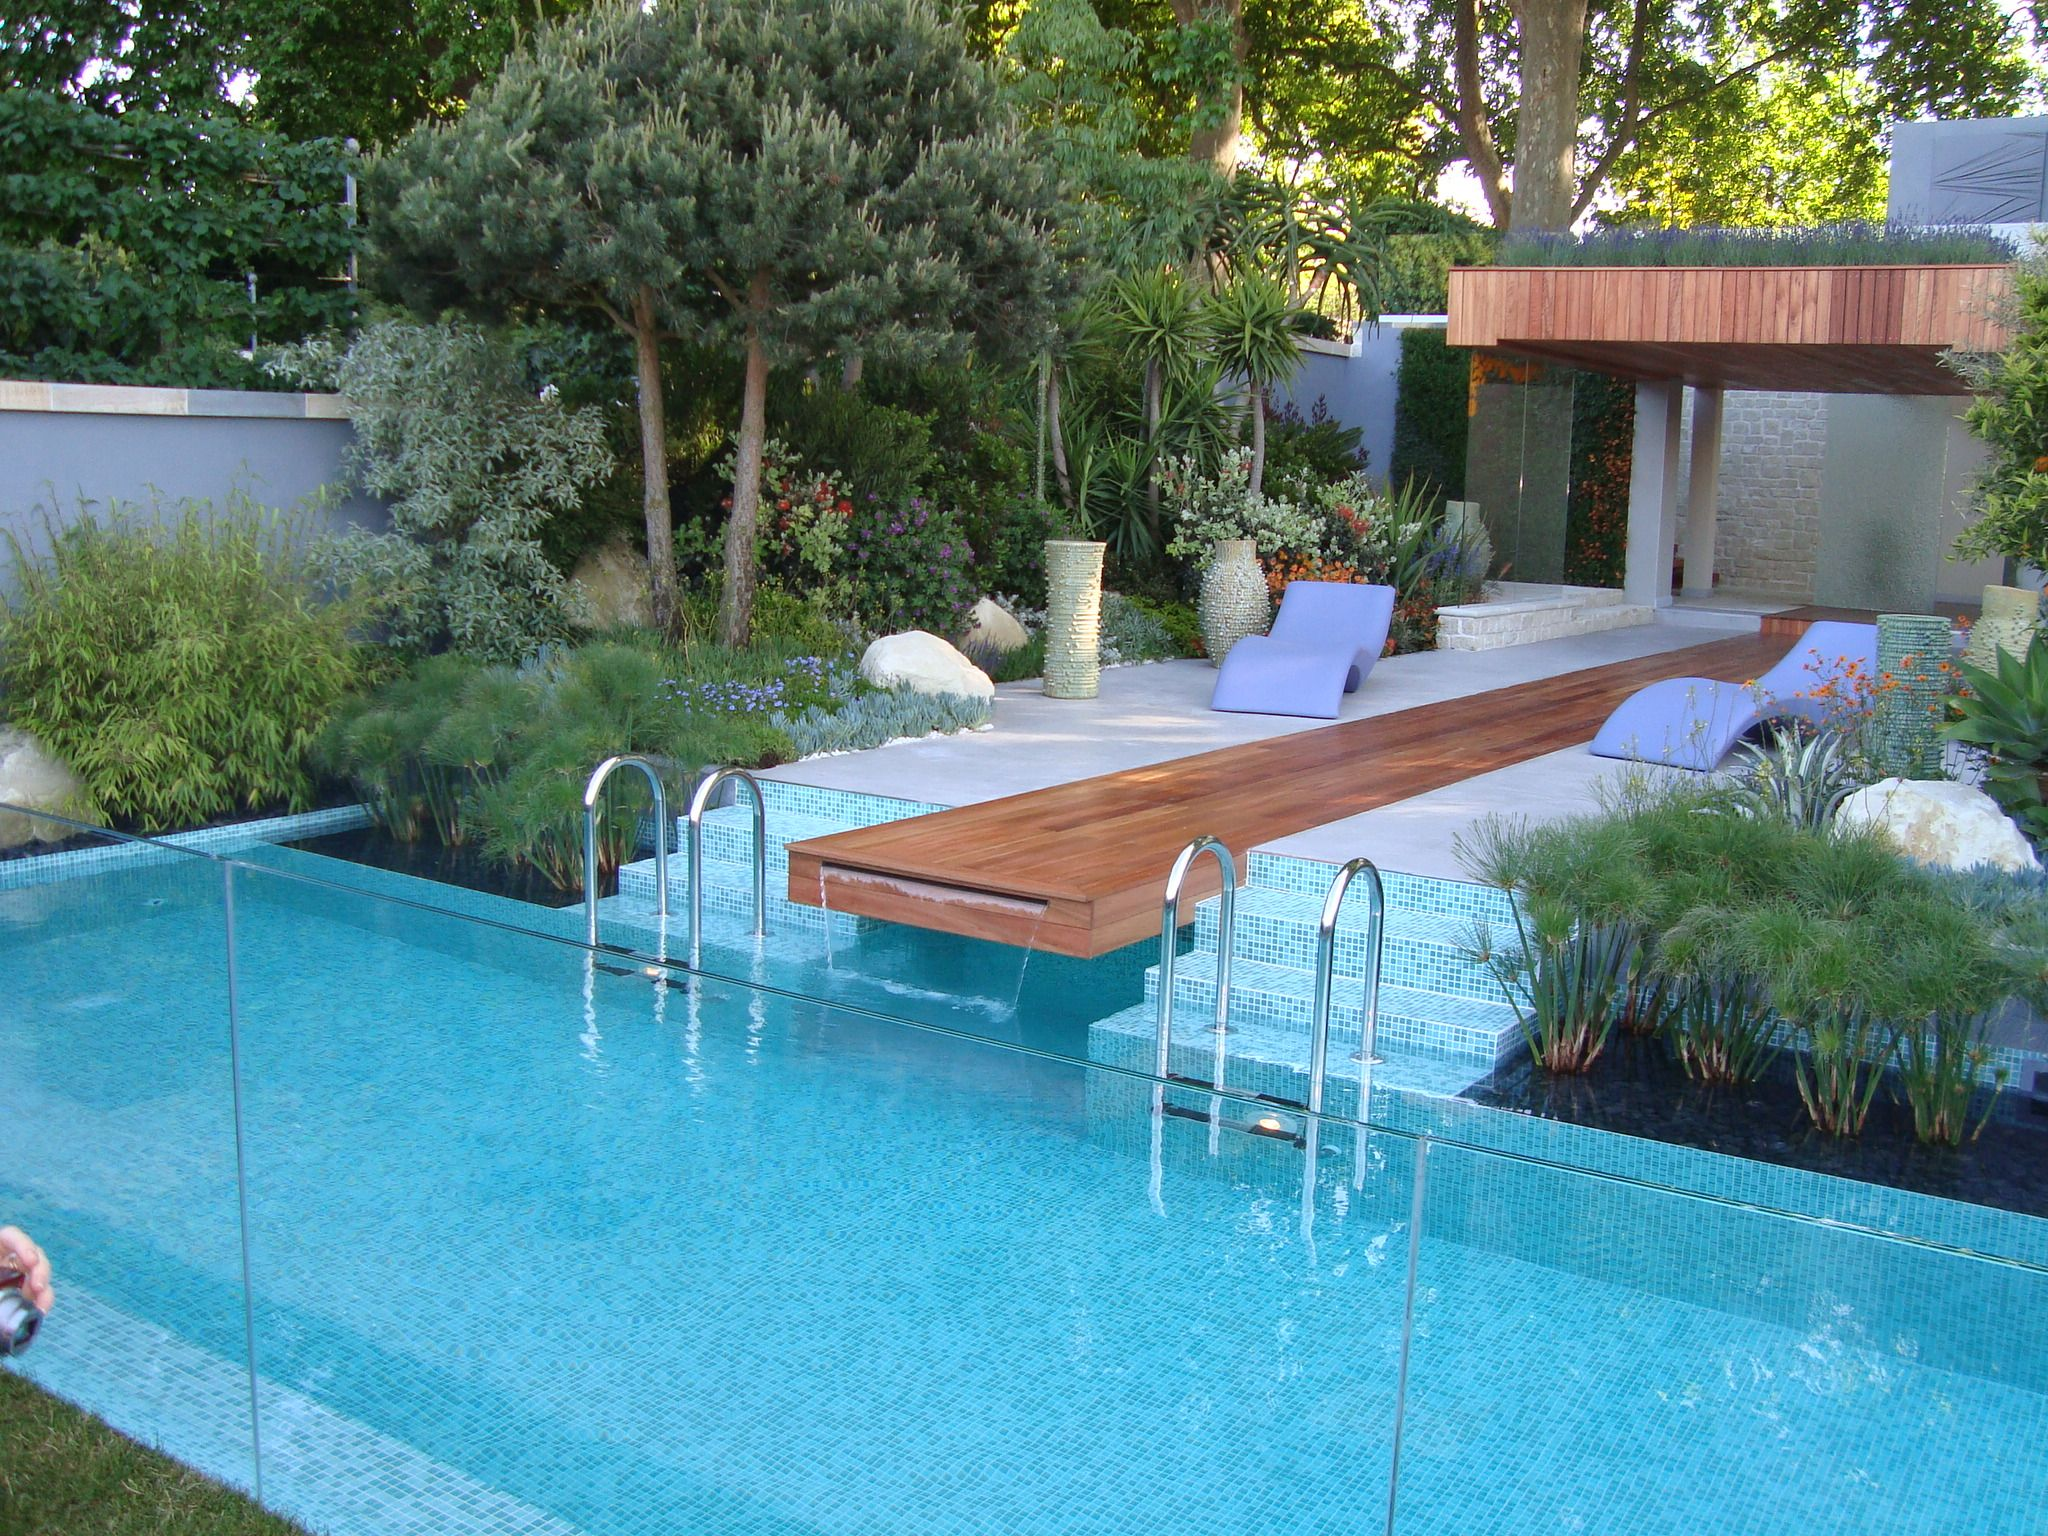 Chelsea flower show 2013 integral swimming pool and for Pool and garden show perth